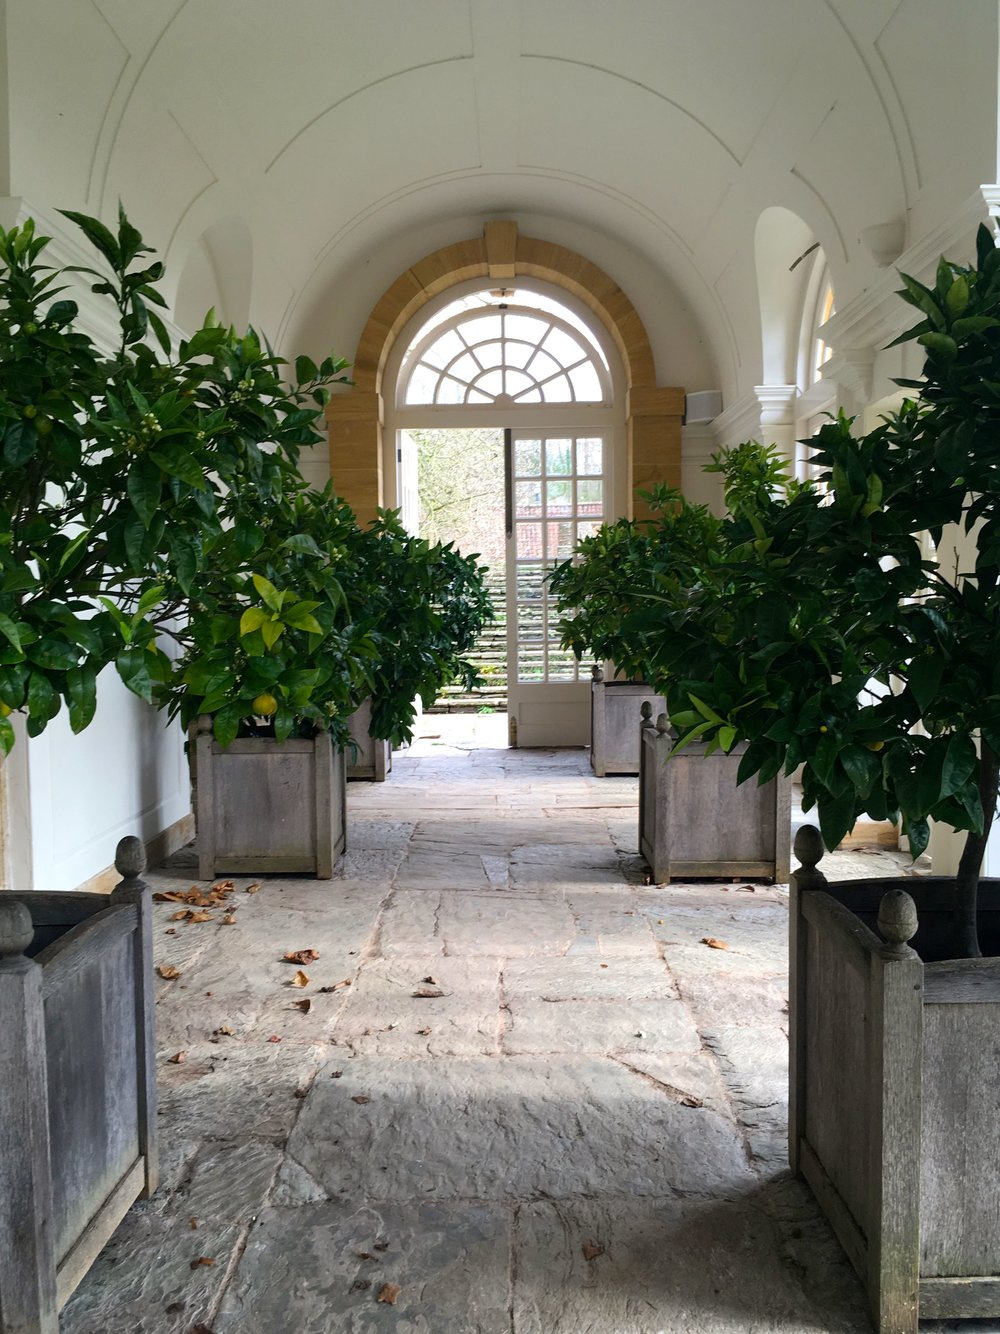 Inside the fabulous Orangery at Hestercombe